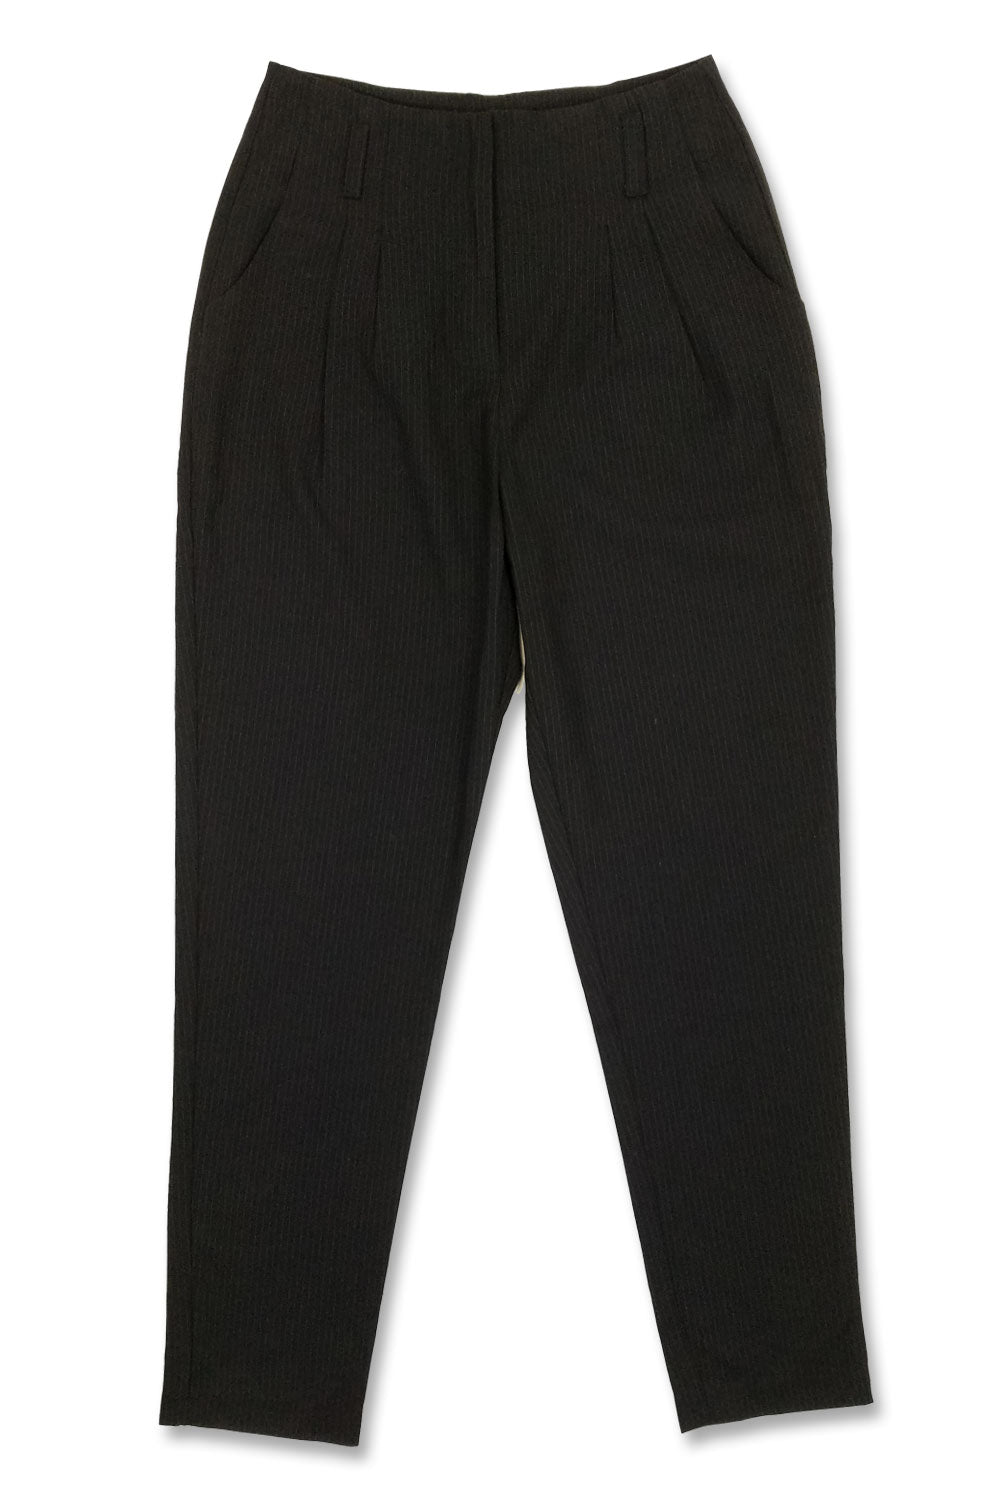 FGS Jr's Black Pinstripe High Wasted Pants